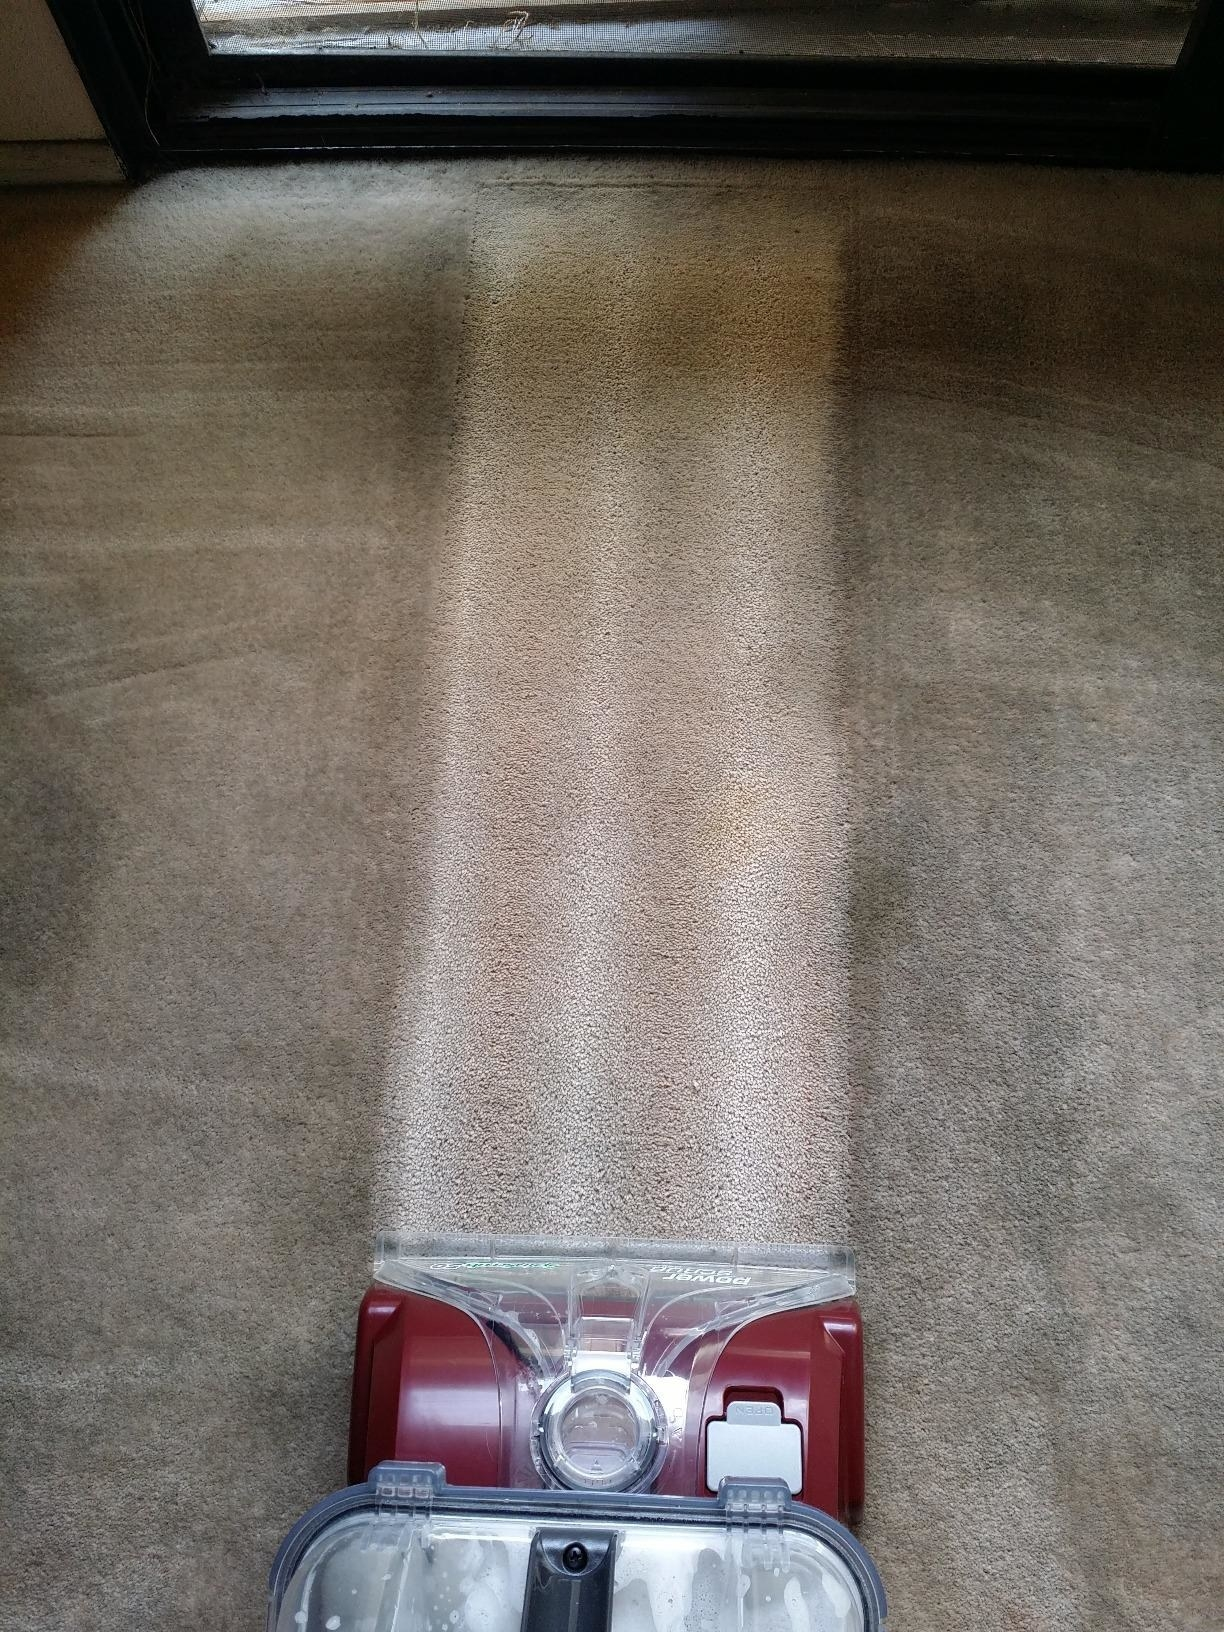 A dirty carpet interrupted by a single strip of white clean carpet where the carpet cleaner has cleaned